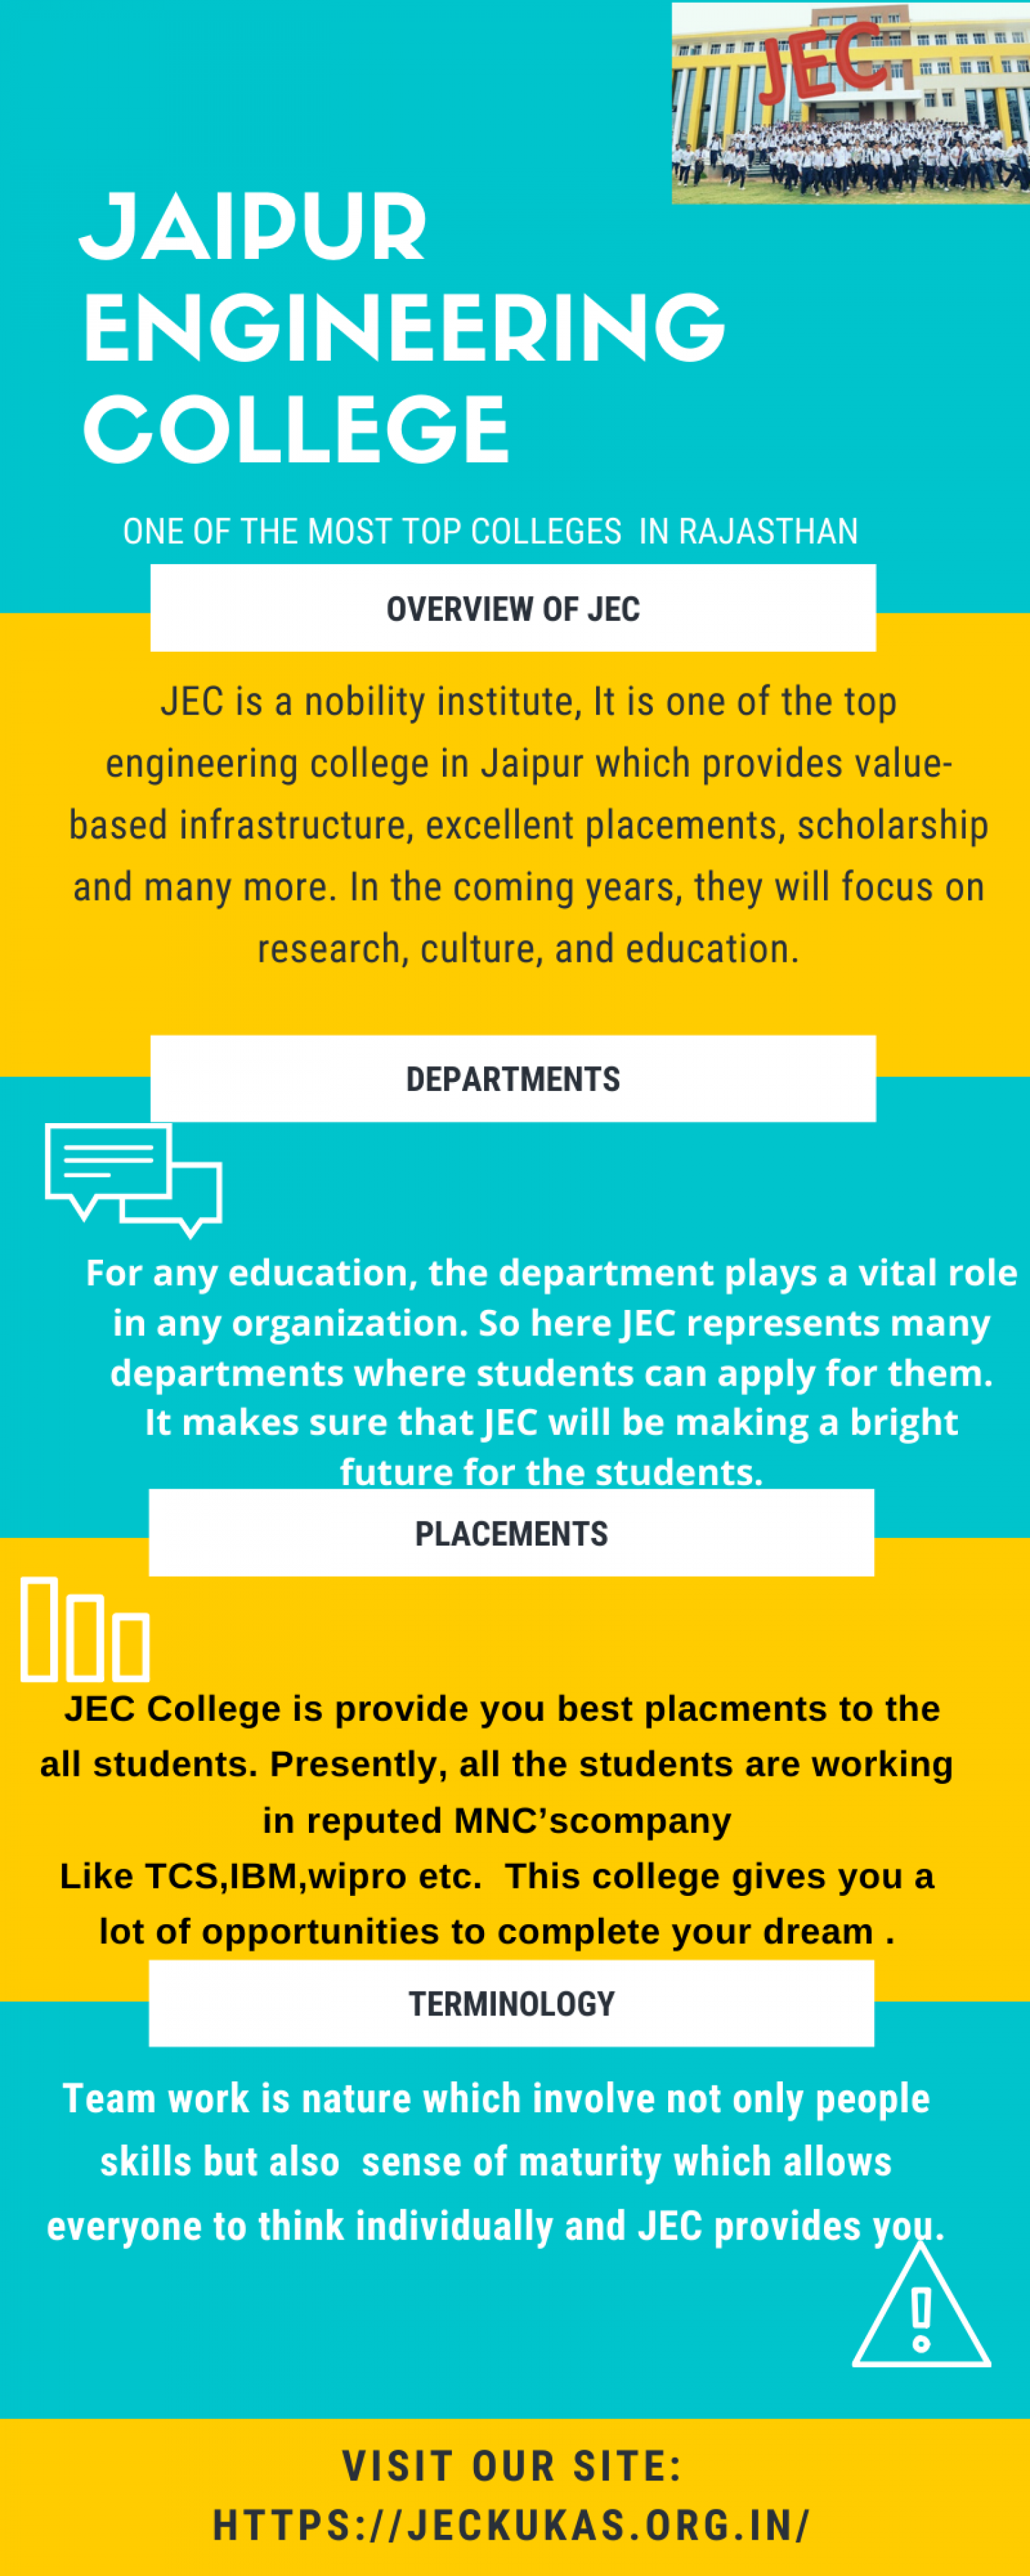 pioneering of JEC Infographic